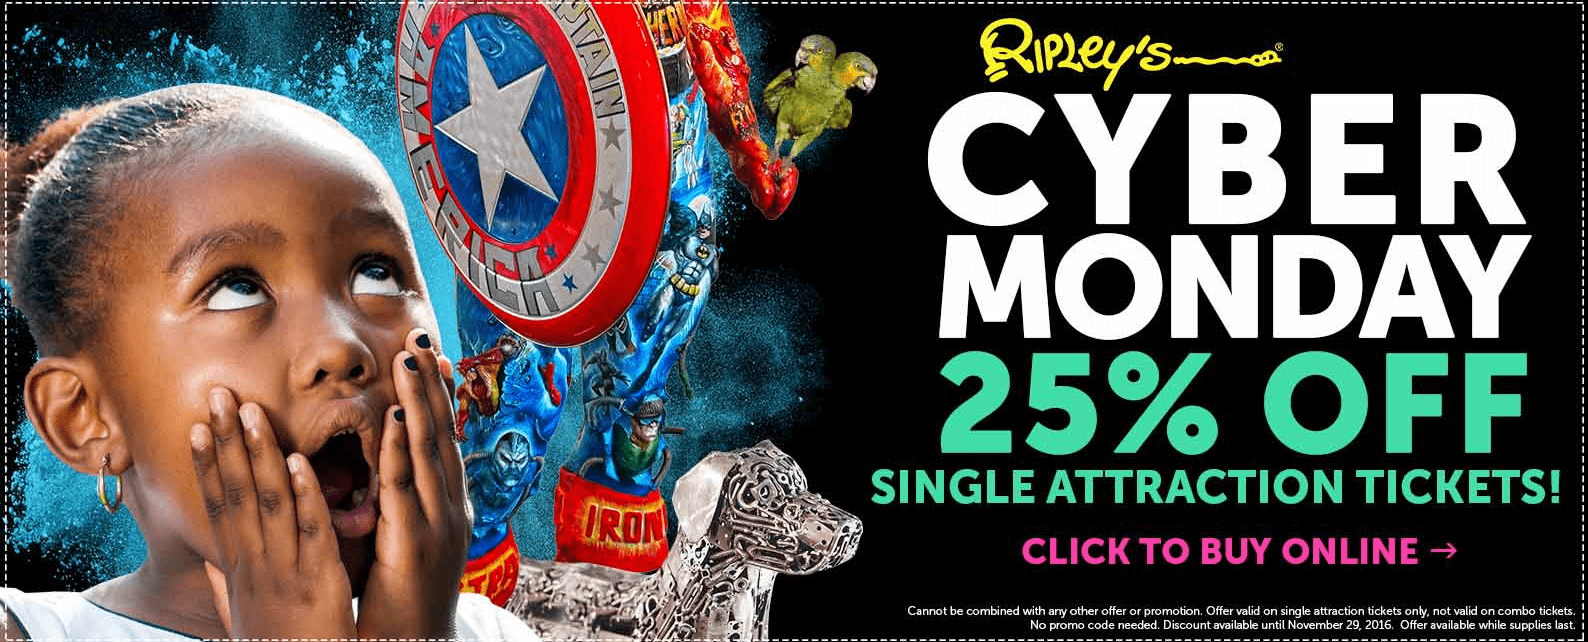 Ripley's Believe It or Not! Niagara Falls Cyber Monday Deal: Save 25% Off All Single Attraction & Combo Tickets!